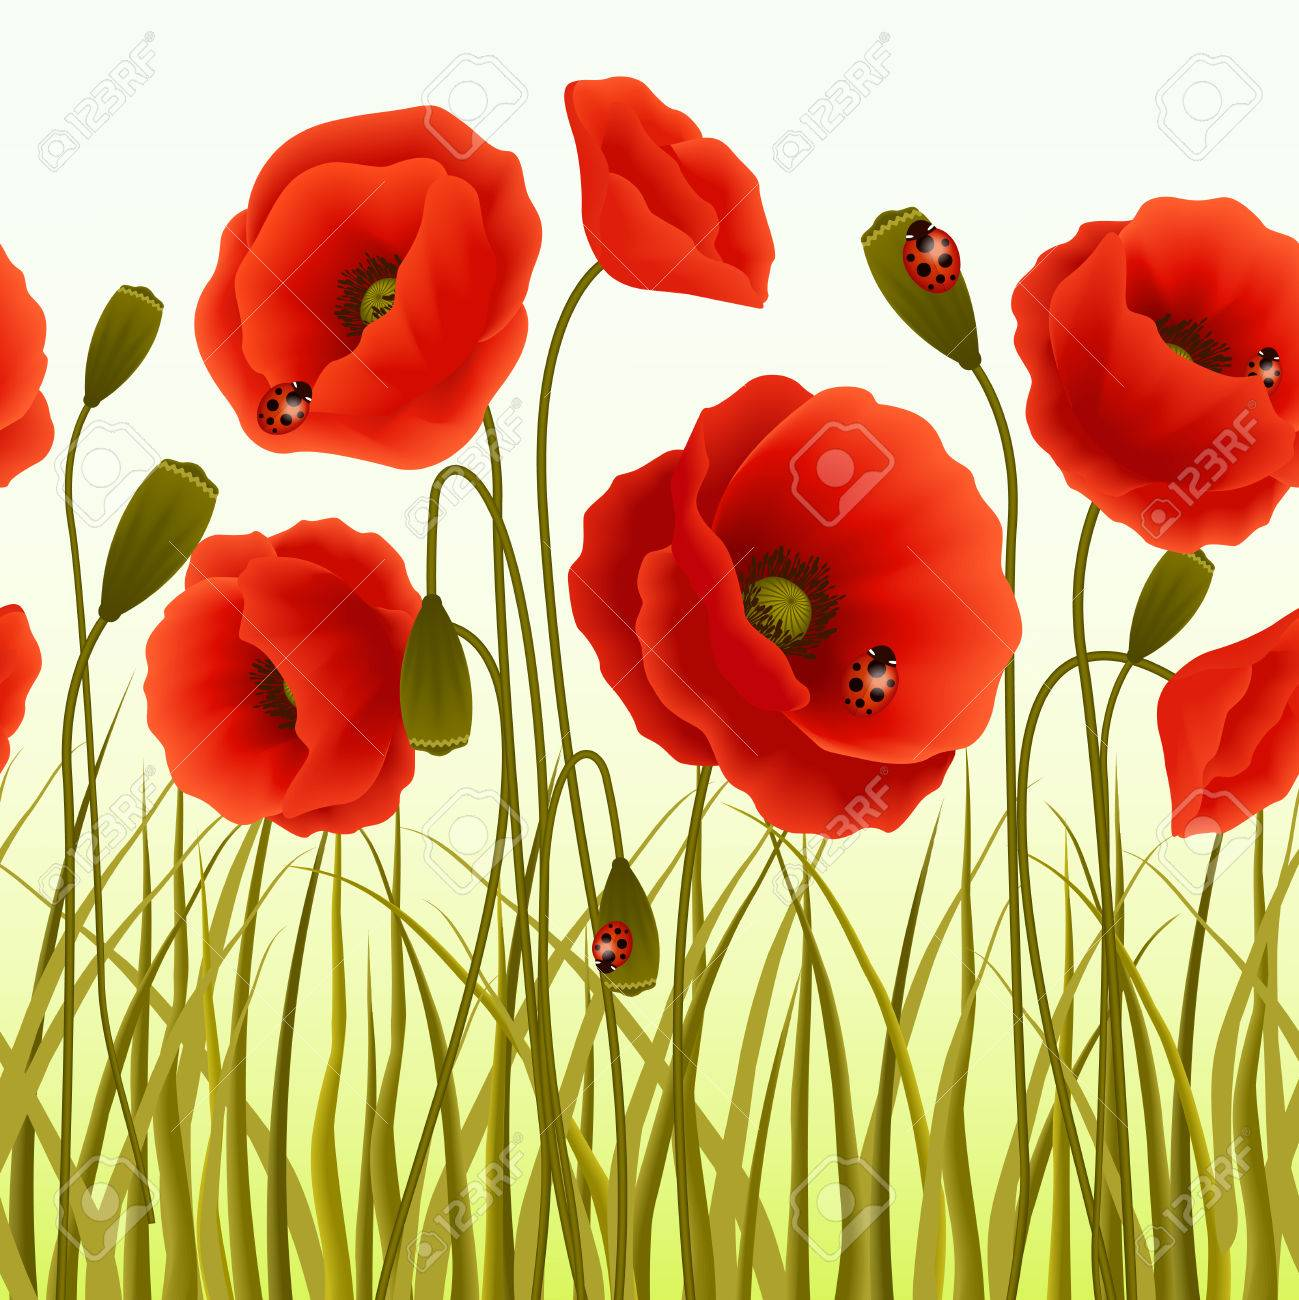 Red Romantic Poppy Flowers And Grass With Ladybugs Wallpaper 1299x1300